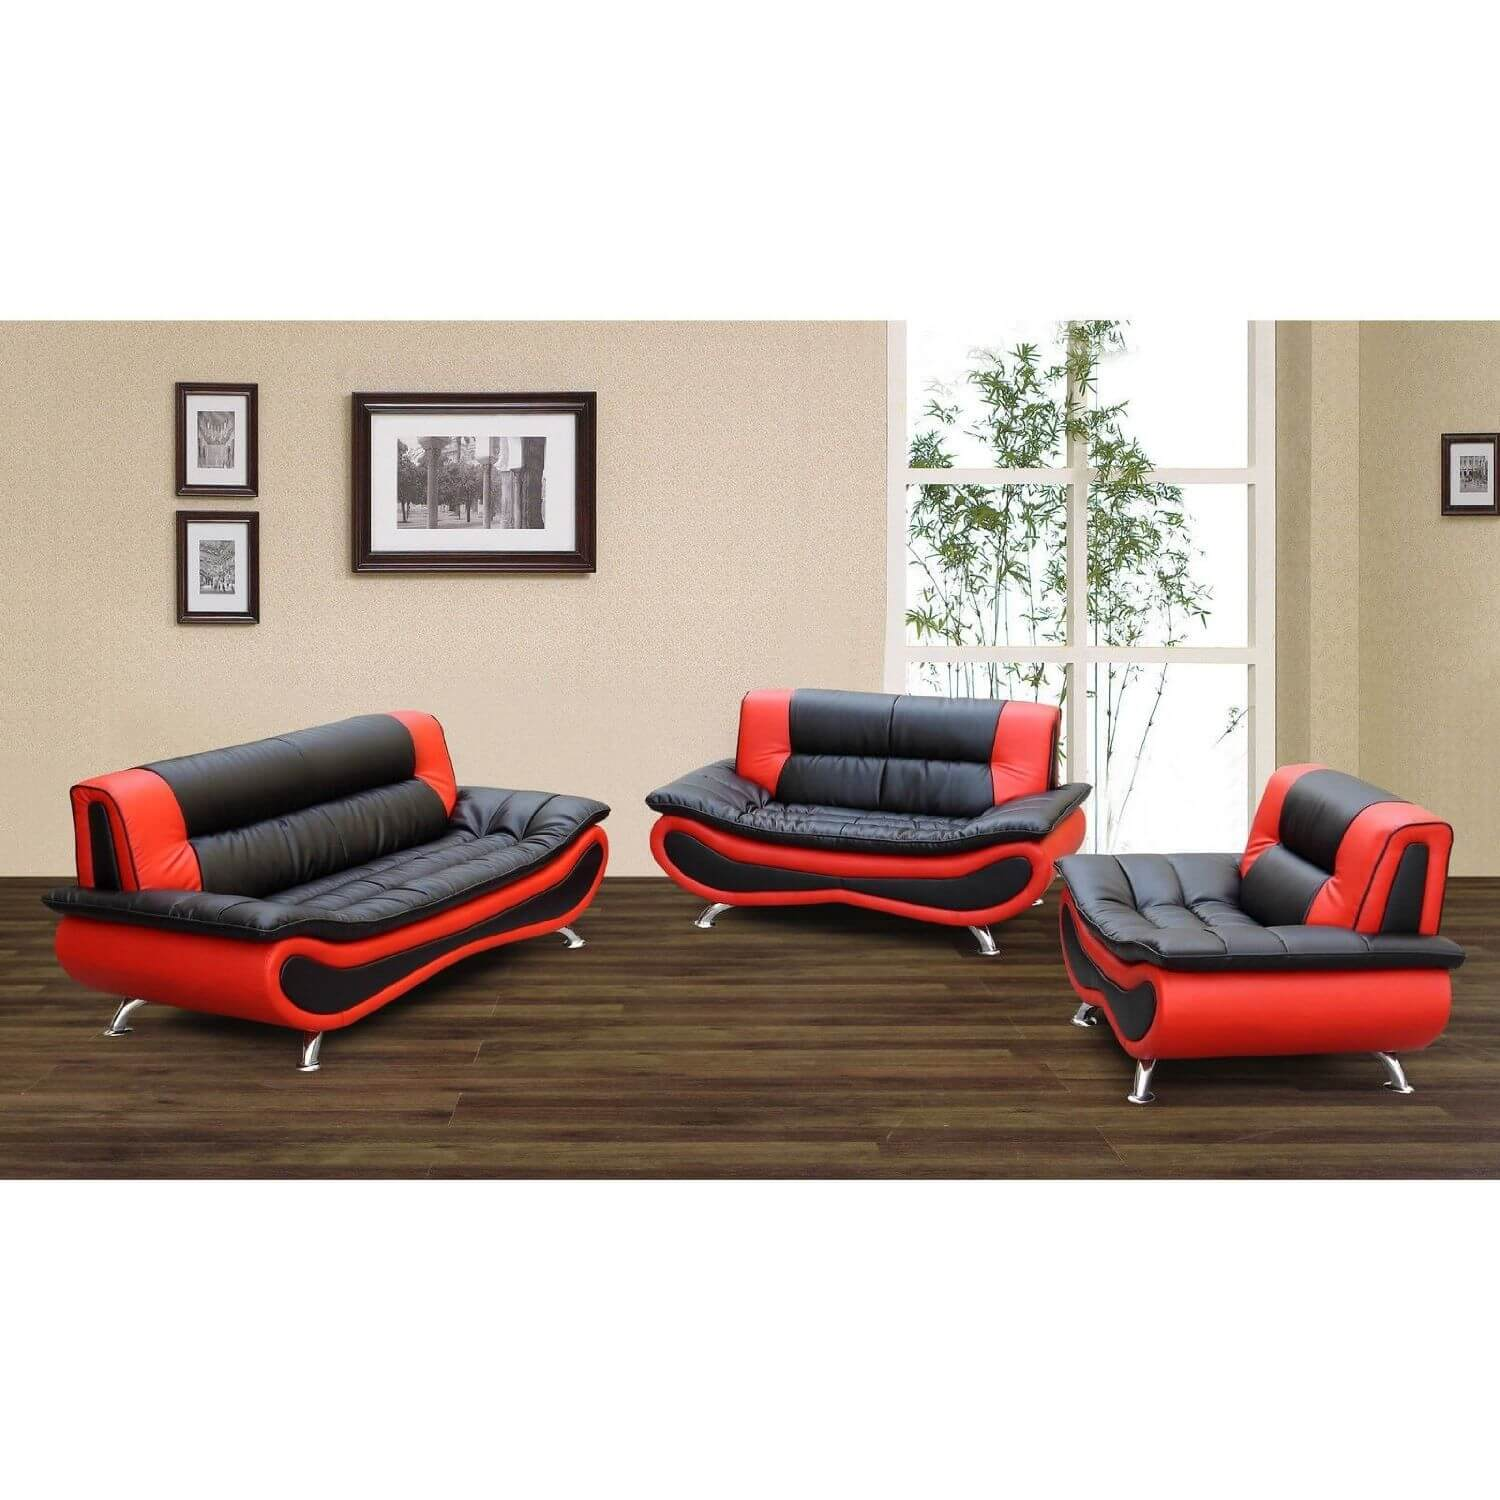 amazing small leather sofa design-Awesome Small Leather sofa Gallery